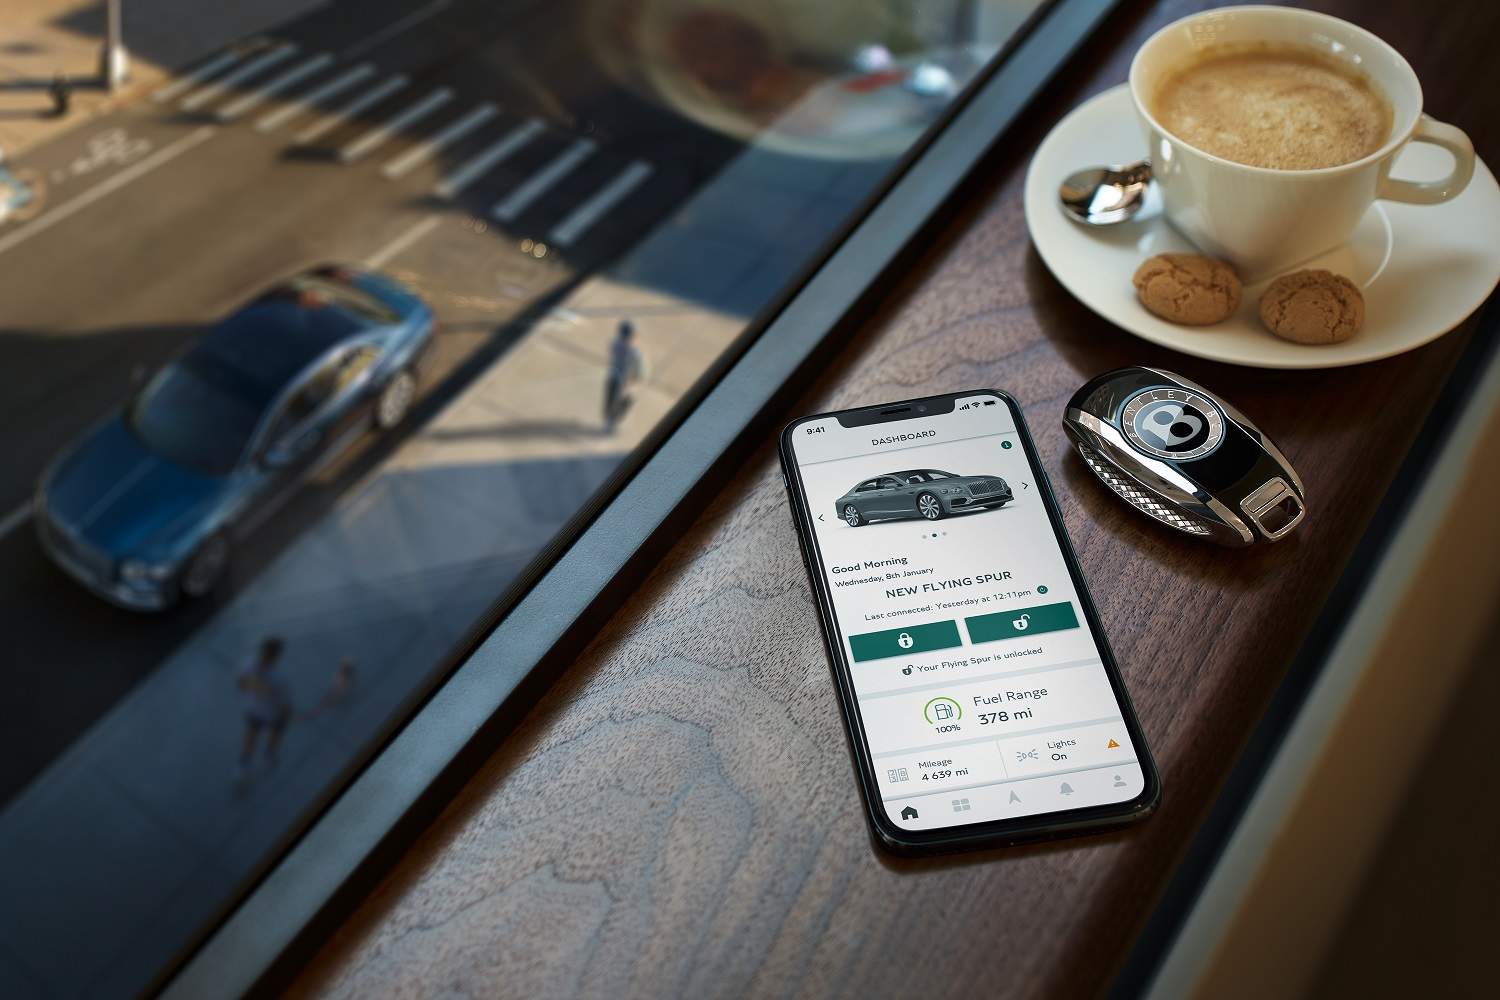 My Bentley: The Digitally Connected Grand Tourer